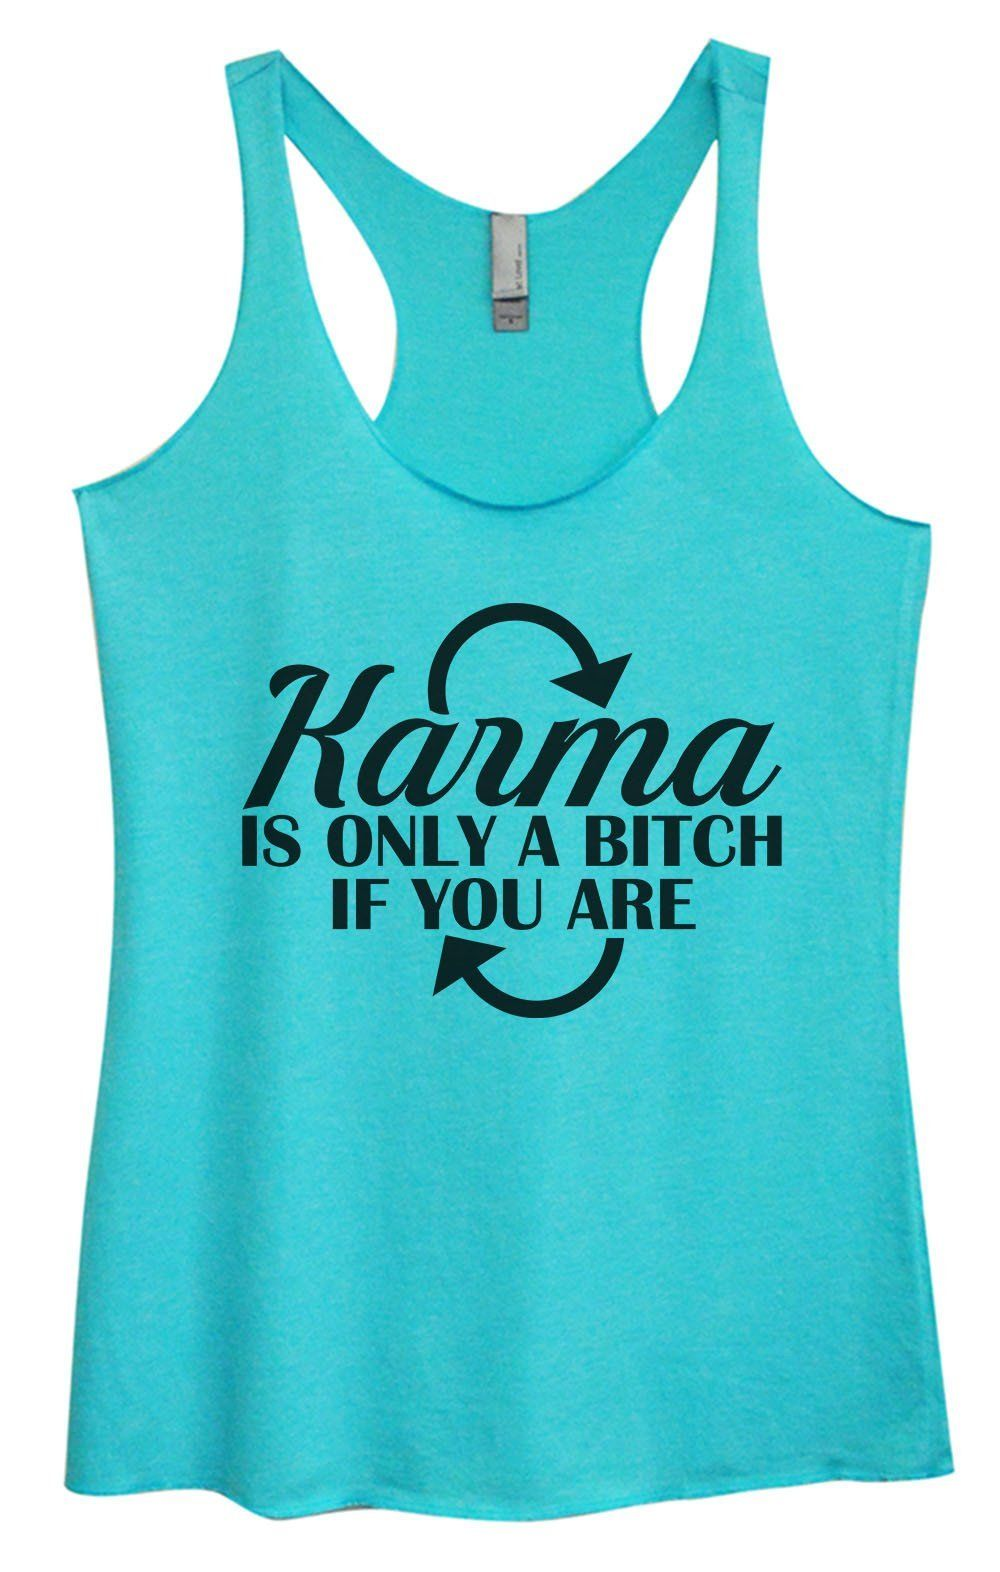 a648fe51 Womens Tri-Blend Tank Top - Karma Is Only A Bitch If You Are | Bella Canvas  Gathered Back (6 Colors) | Athletic tank tops, Tops, Funny tank tops